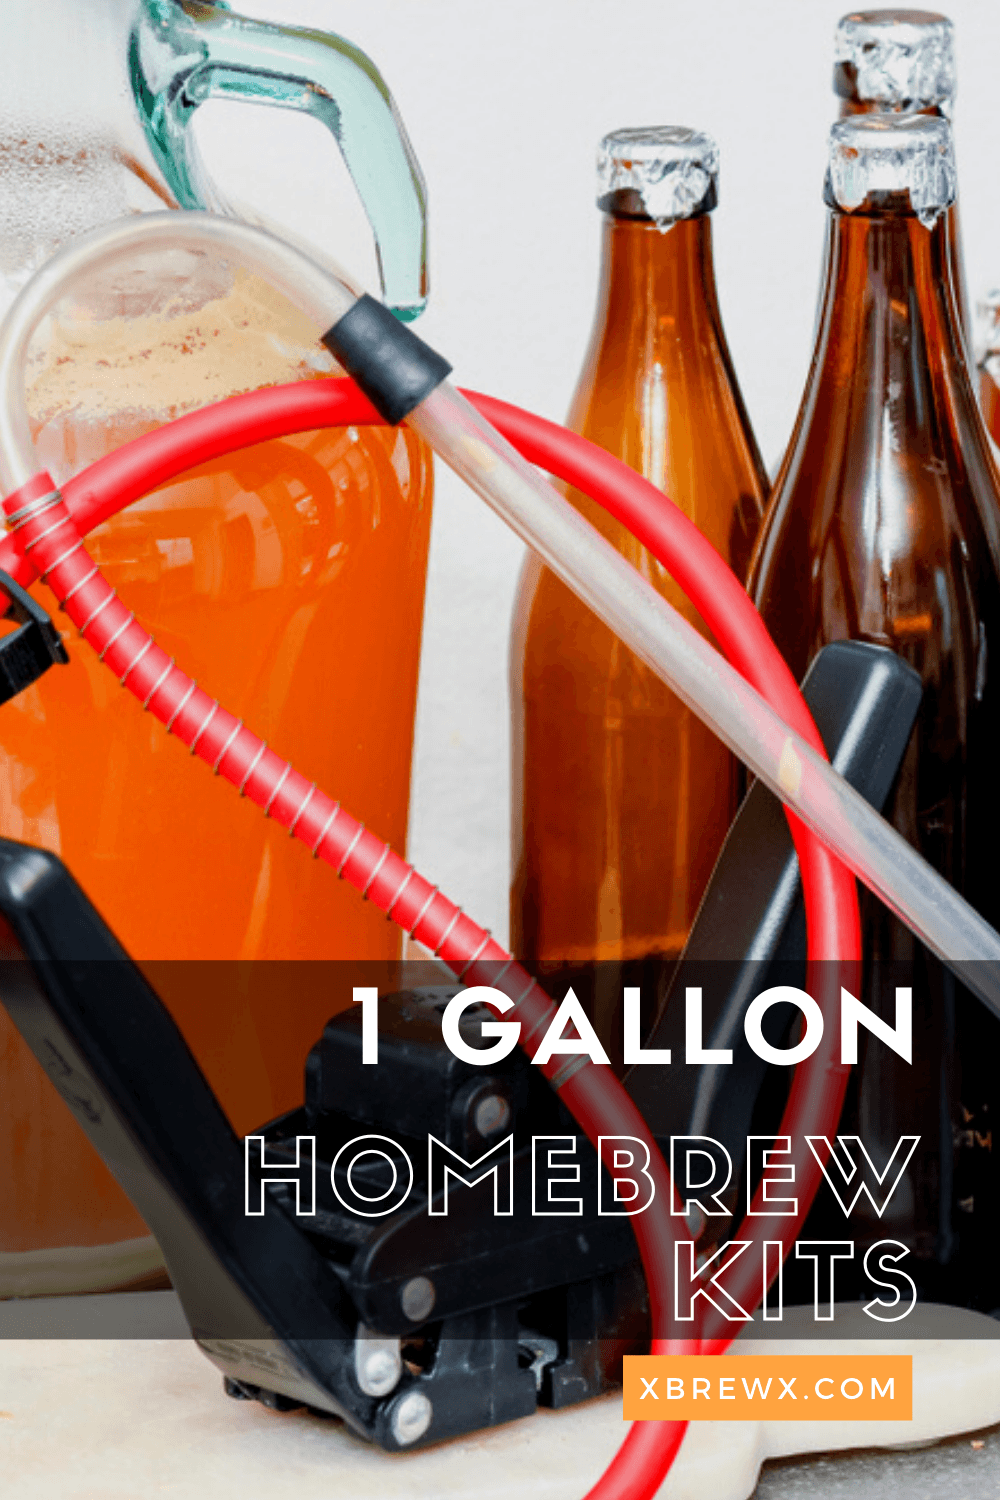 1-Gallon-homebrew-kits-1